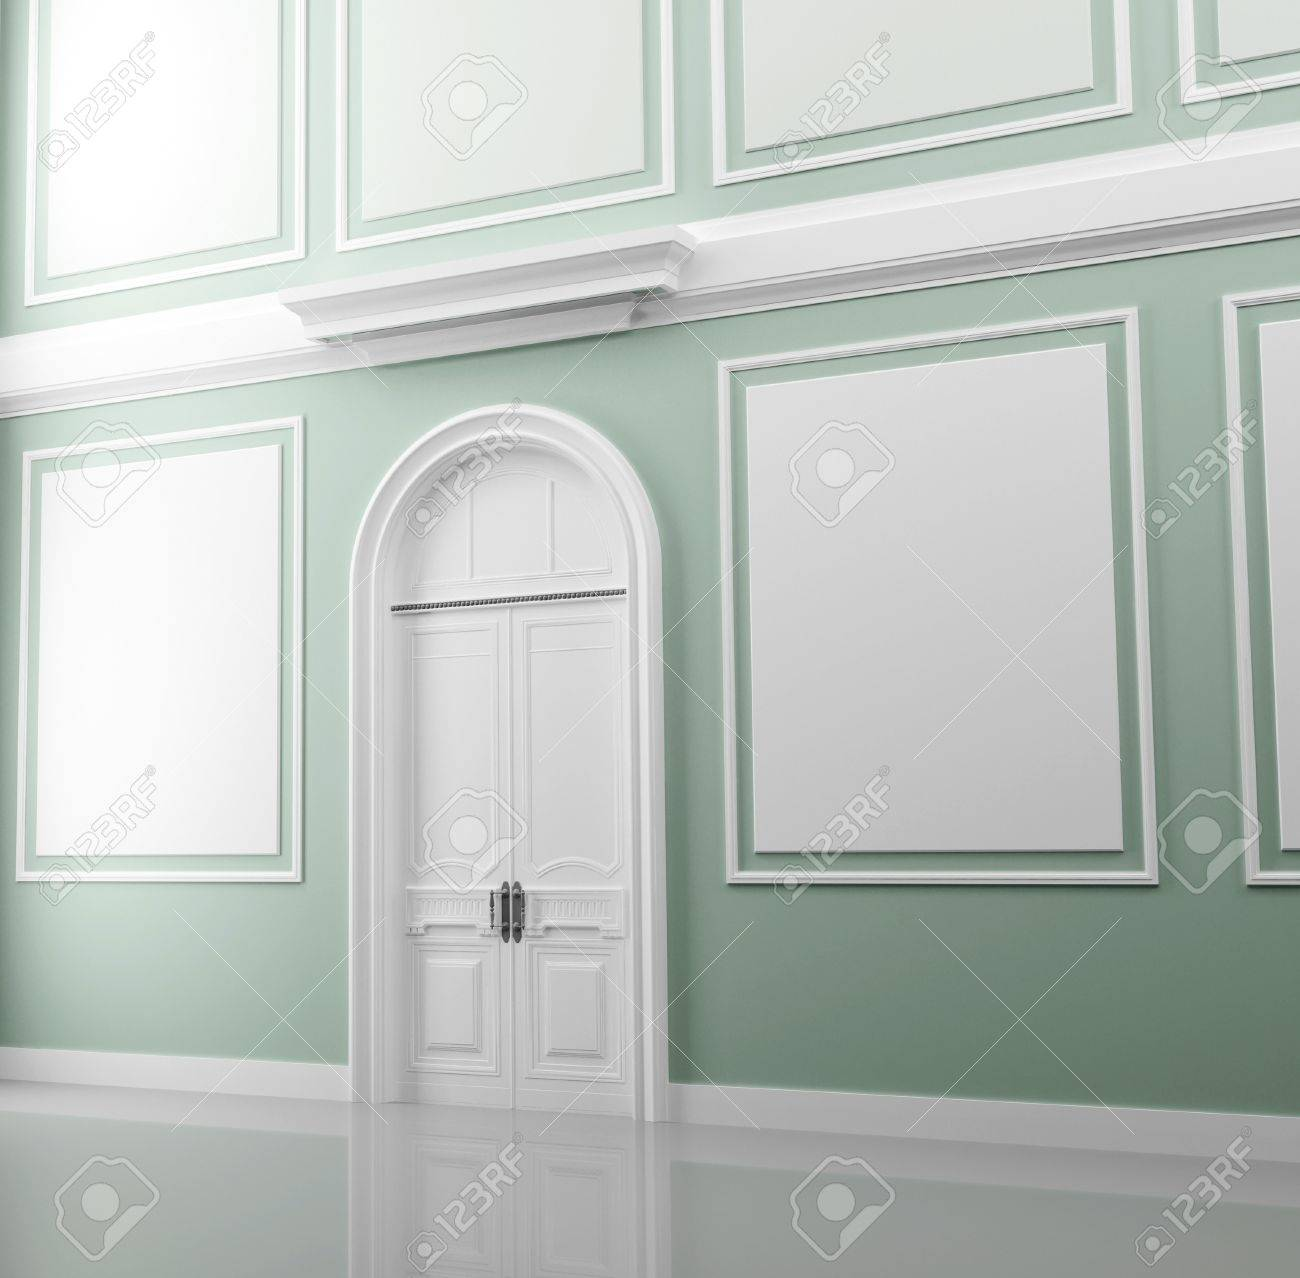 Abstract palace interior fragment with light green walls and white door Stock Photo - 15232773